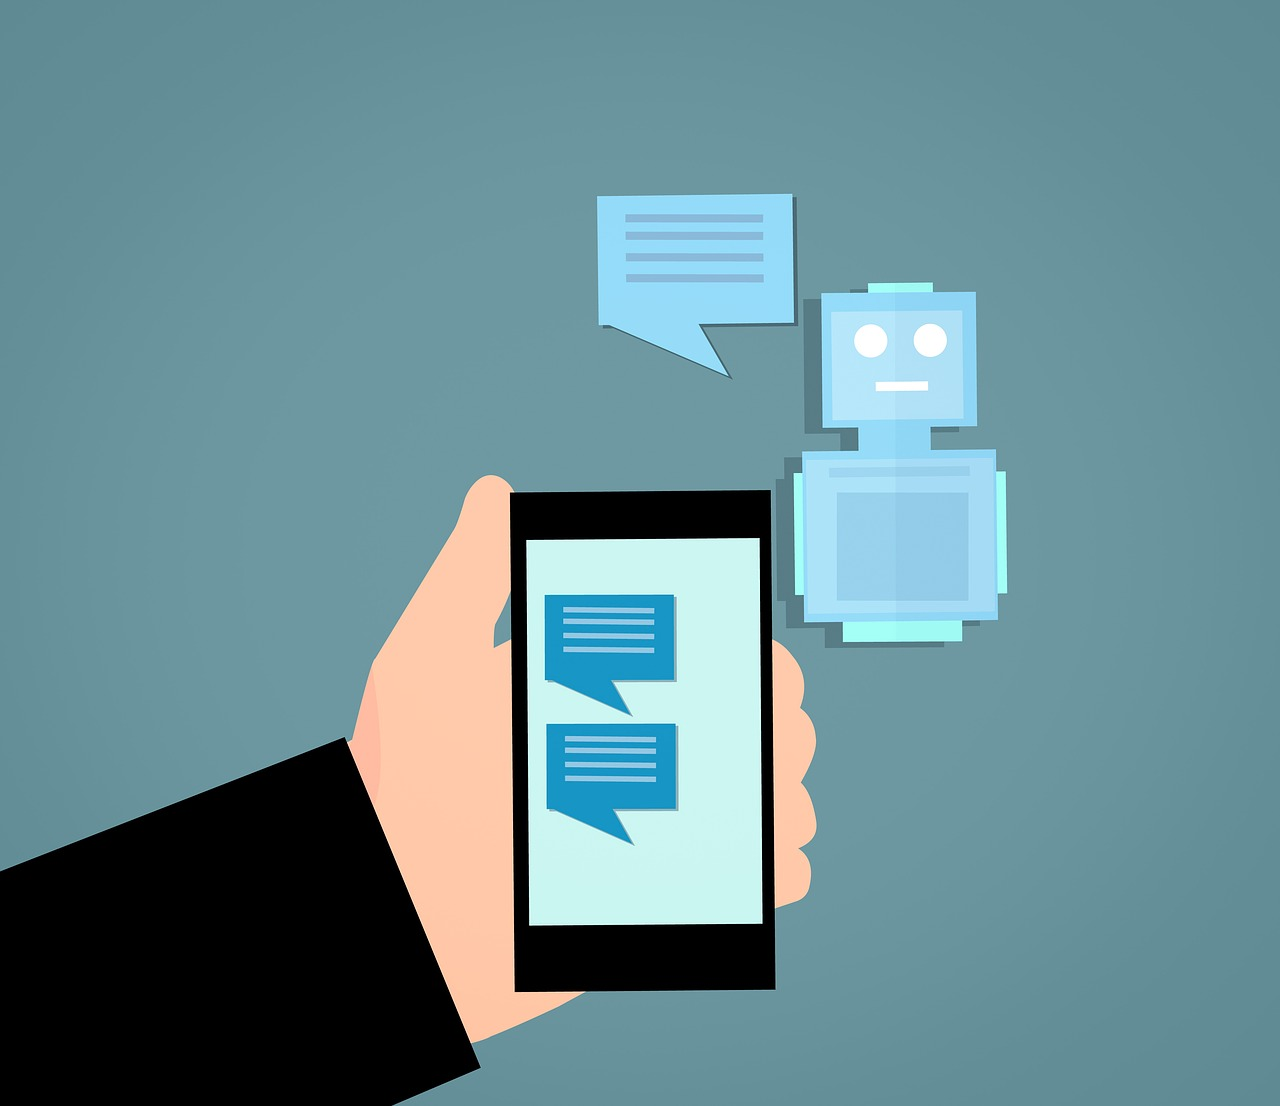 Chatbot, The Conversational AI: What Are They and How They Are Used